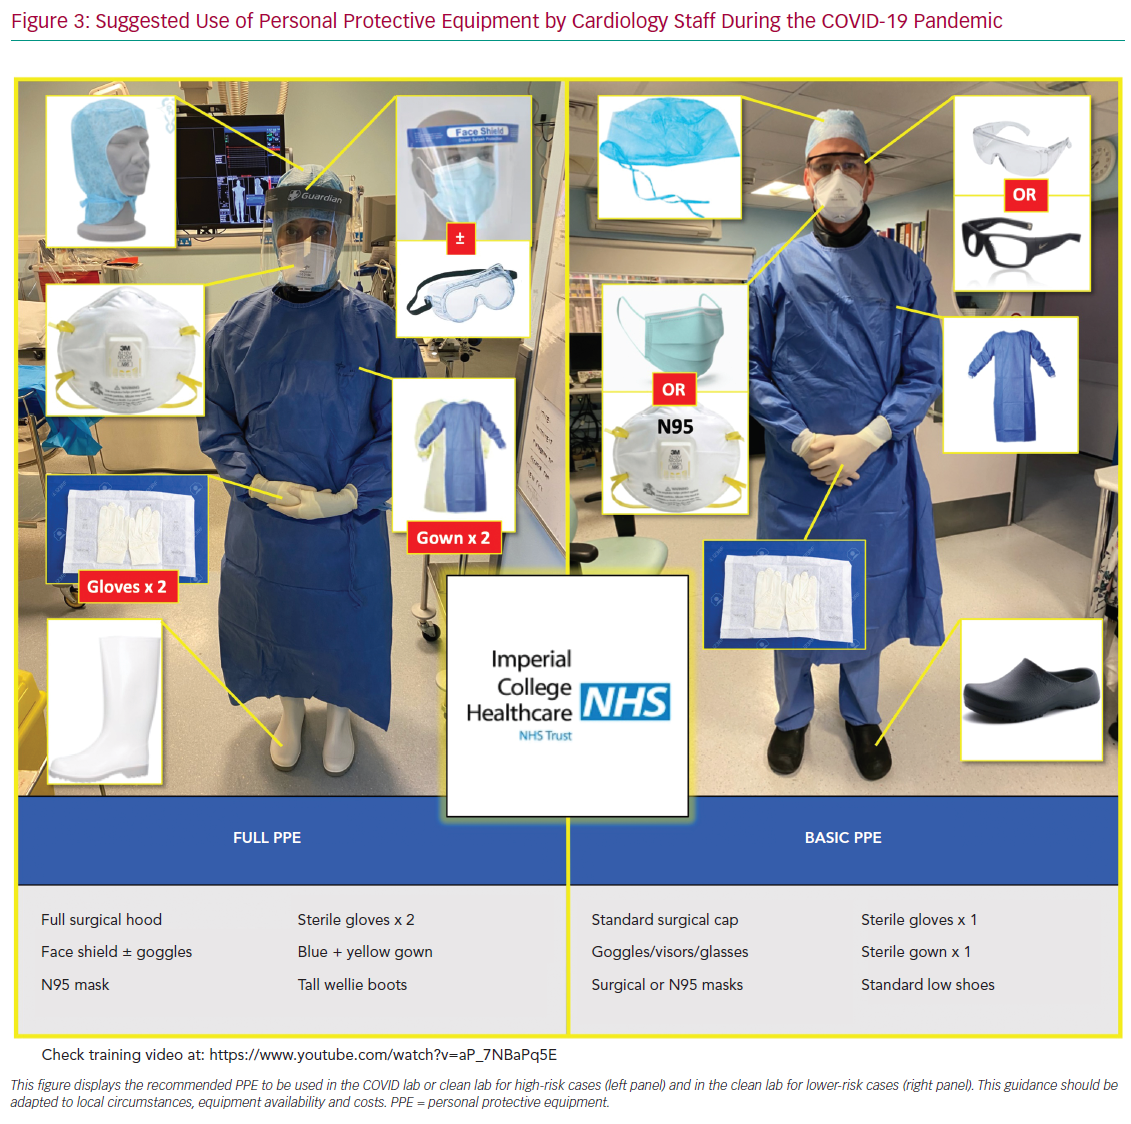 Suggested Use of Personal Protective Equipment